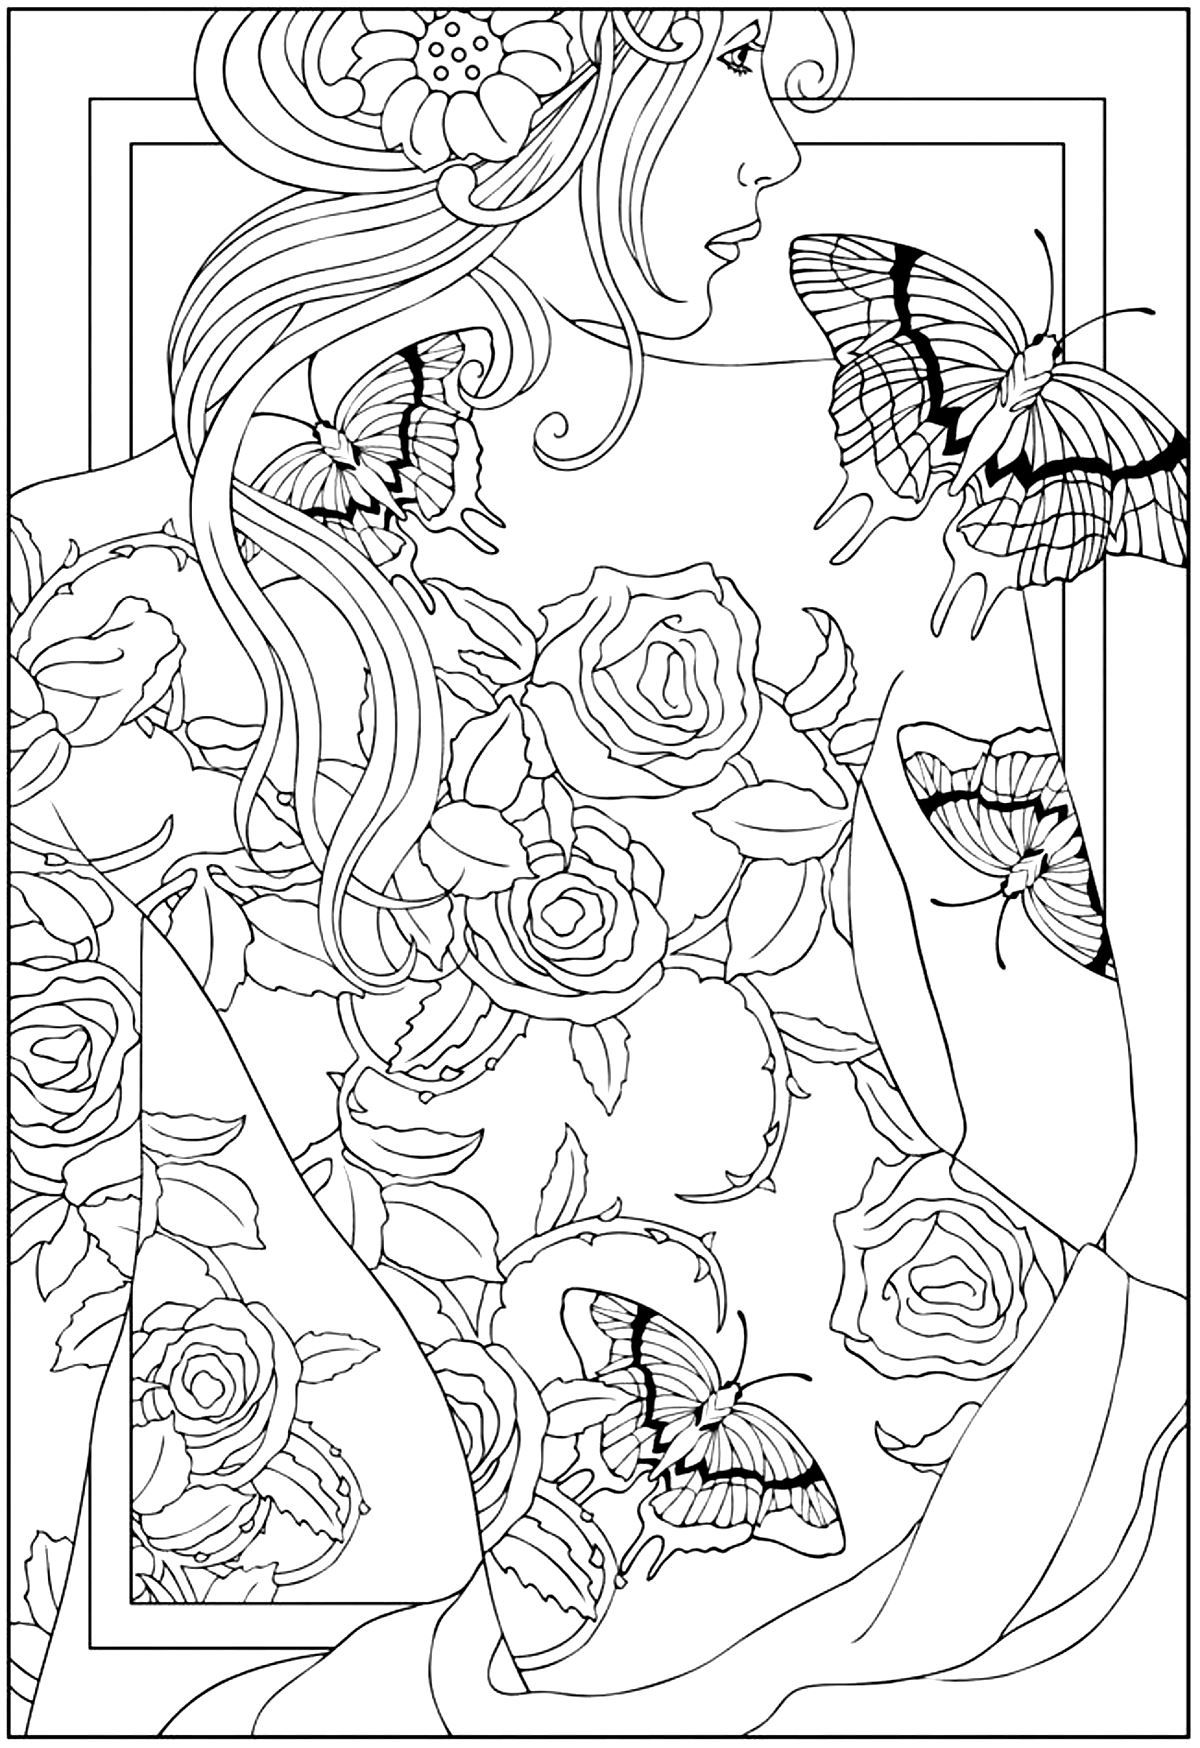 The Tattoo Colouring Book By Megamunden Tattoo Coloring Book Coloring Book Art Coloring Books